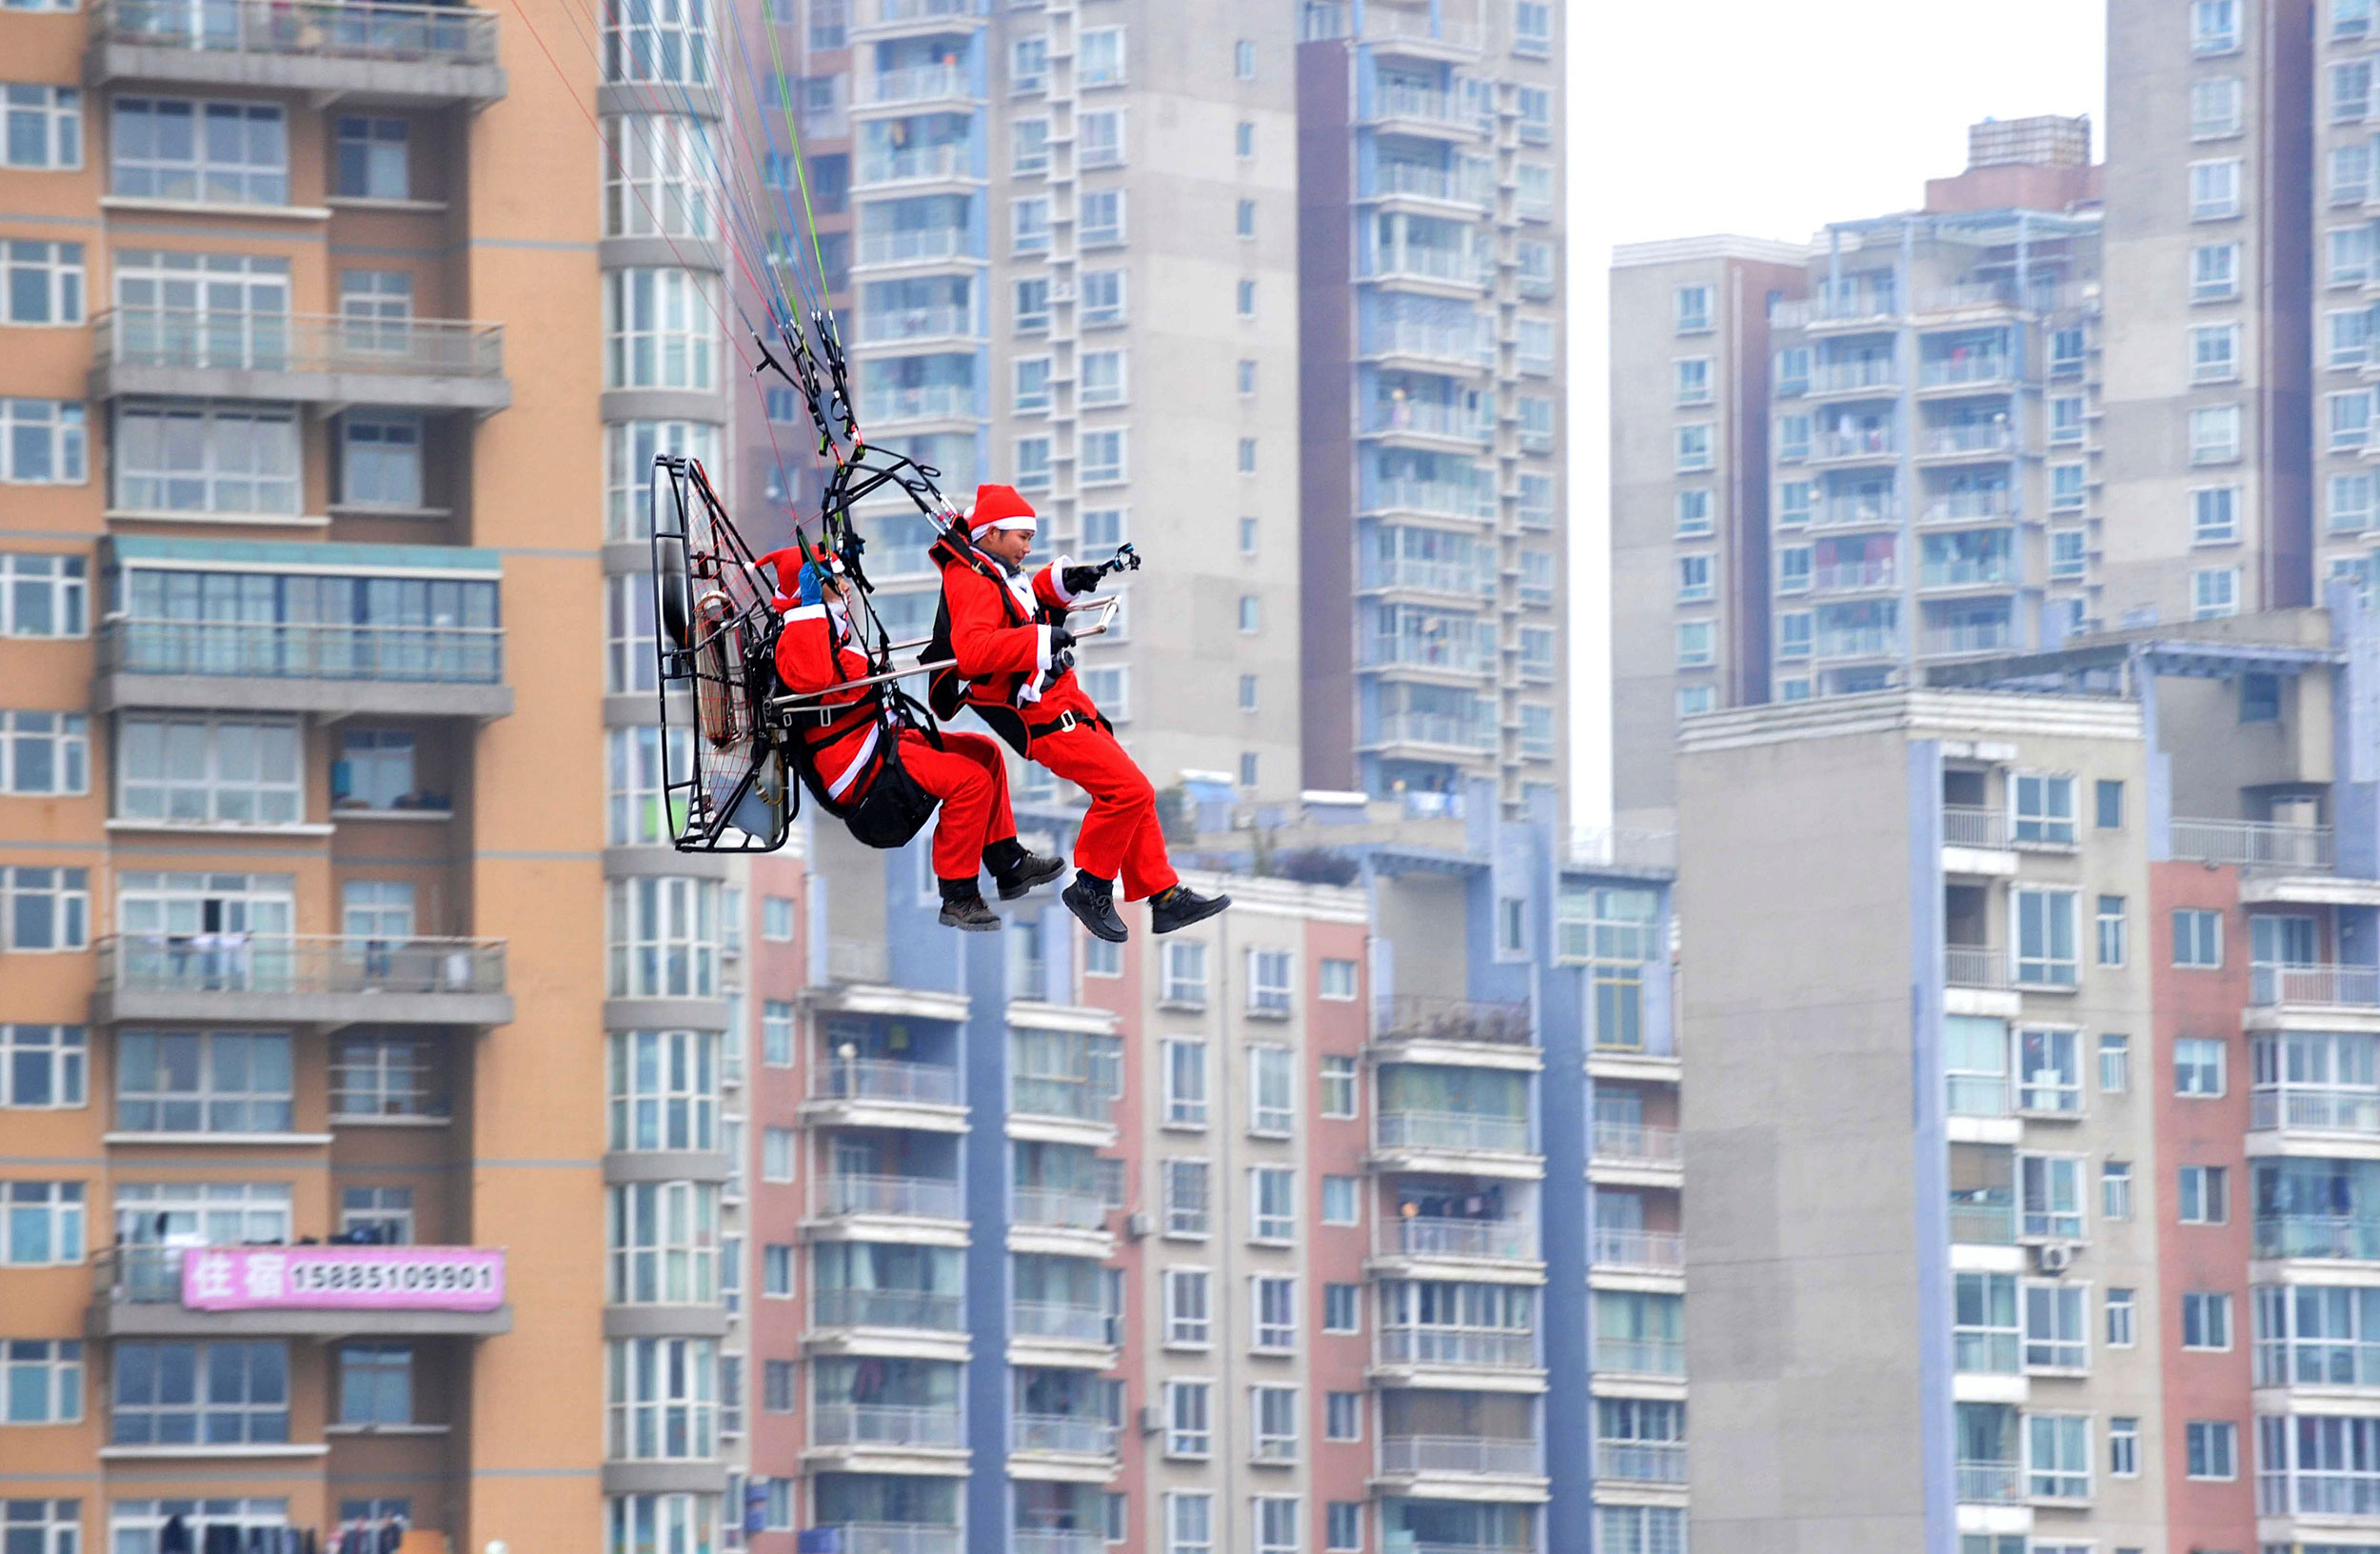 Members of a local parachute club wearing Santa Claus costumes fly past residential buildings to drop presents to pedestrians during a promotional event celebrating Christmas in Guiyang, Guizhou province on Dec. 24, 2014.